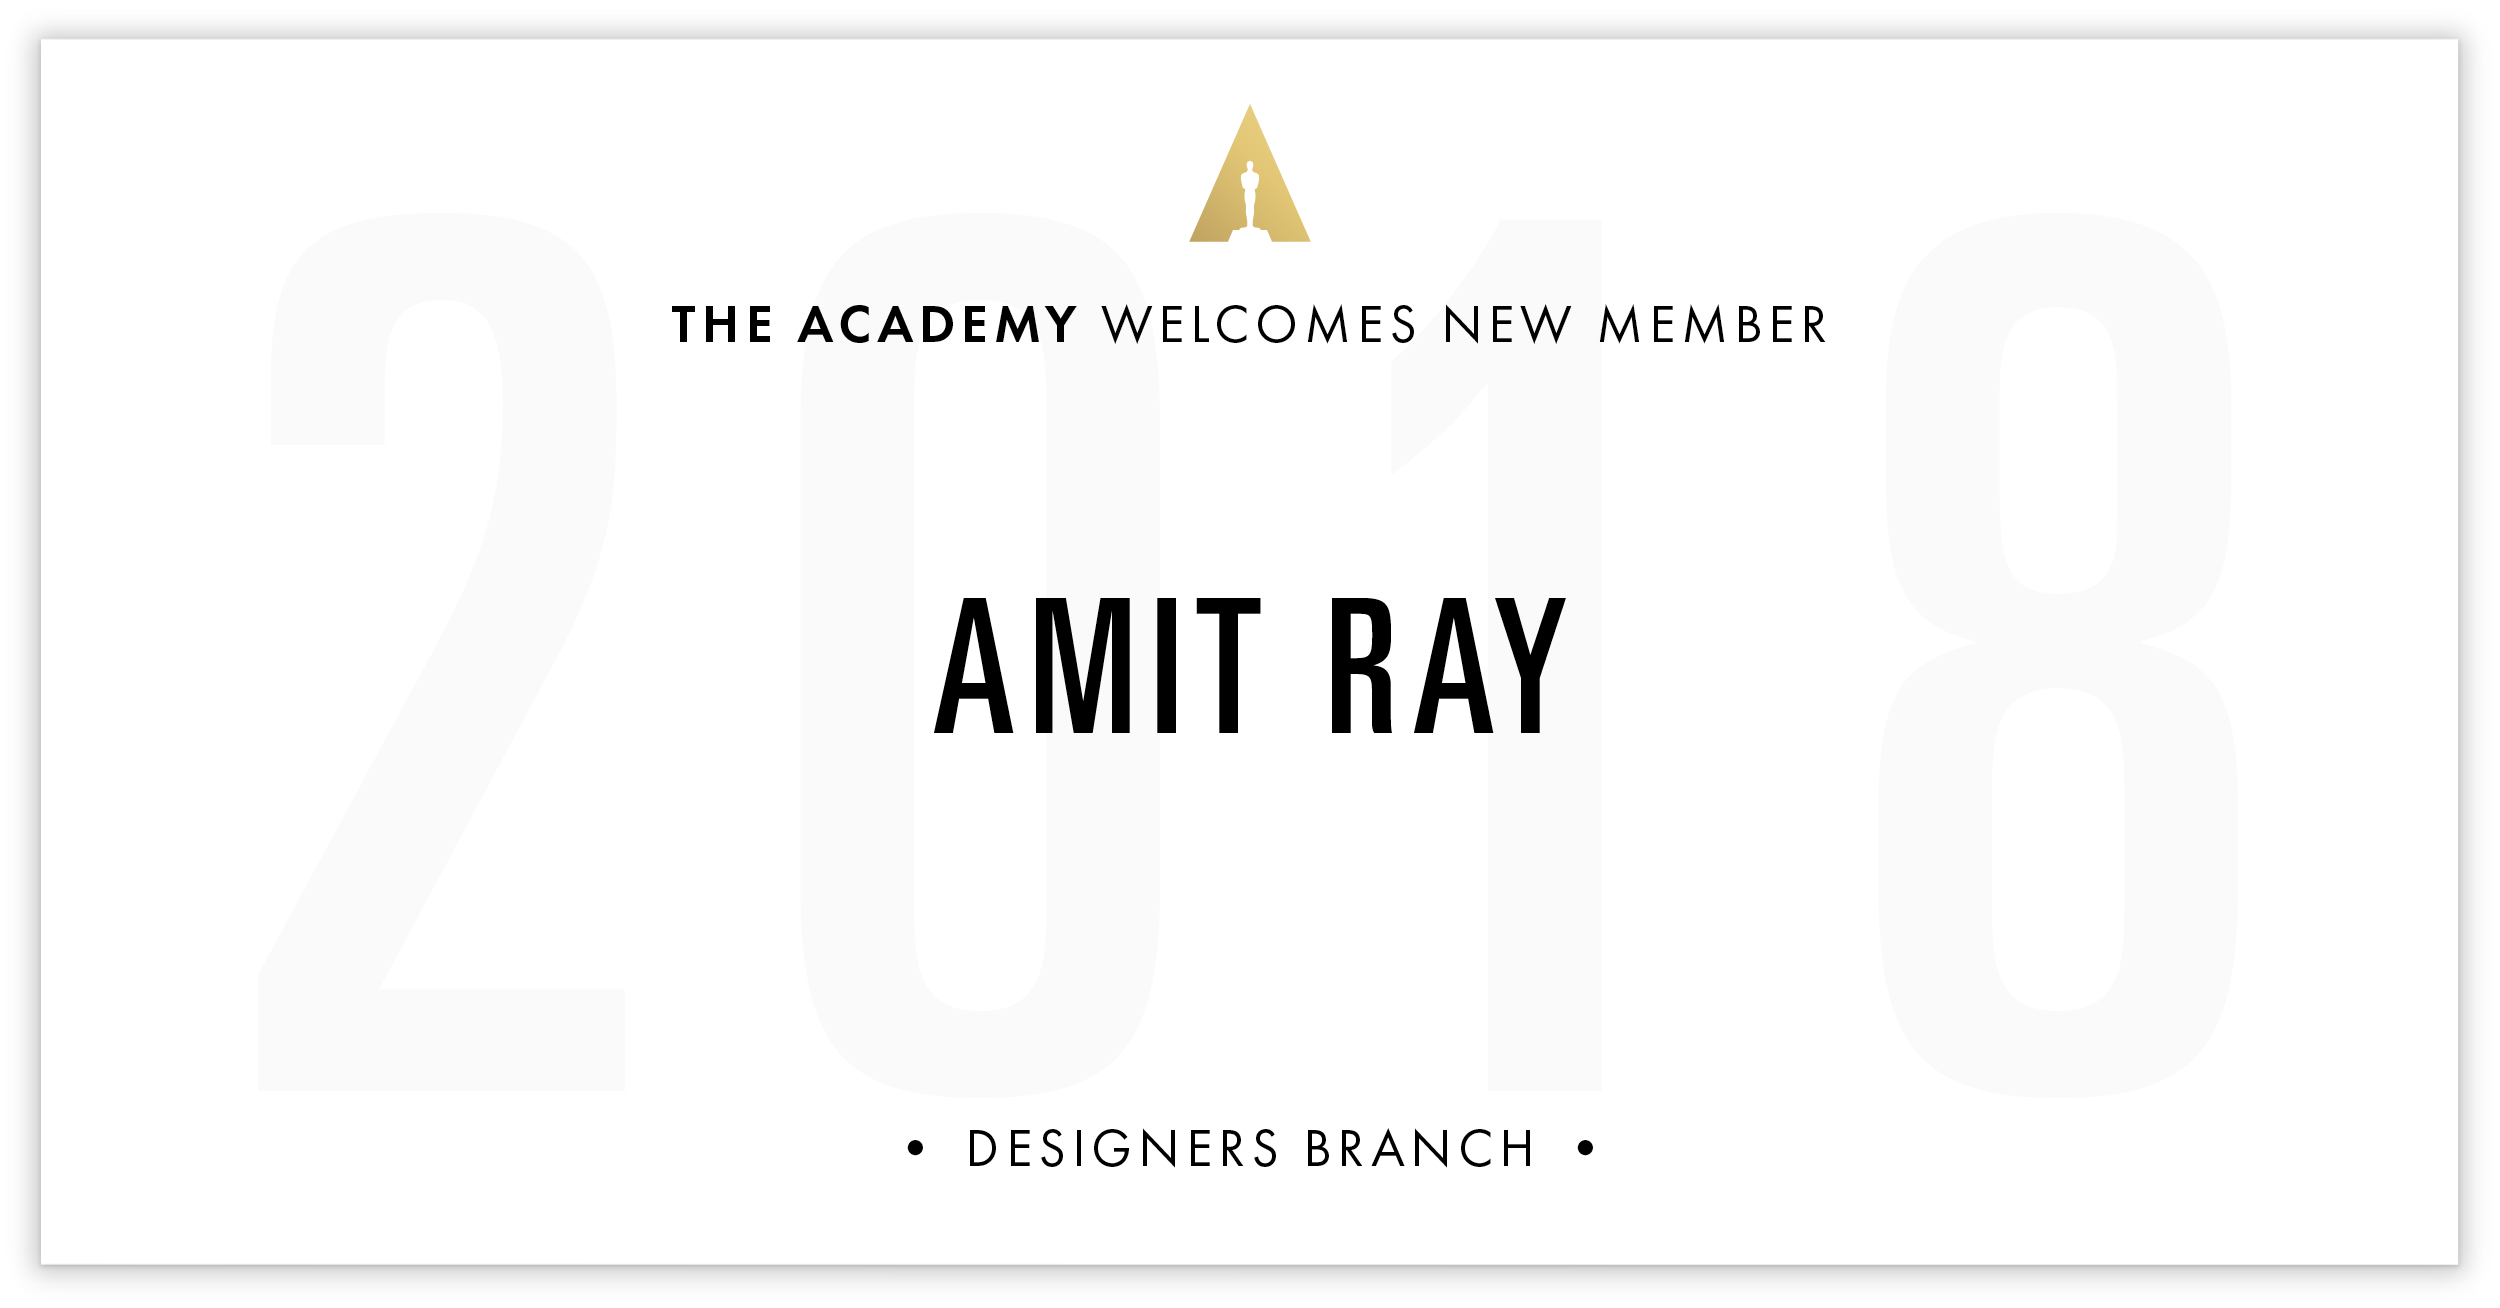 Amit Ray is invited!